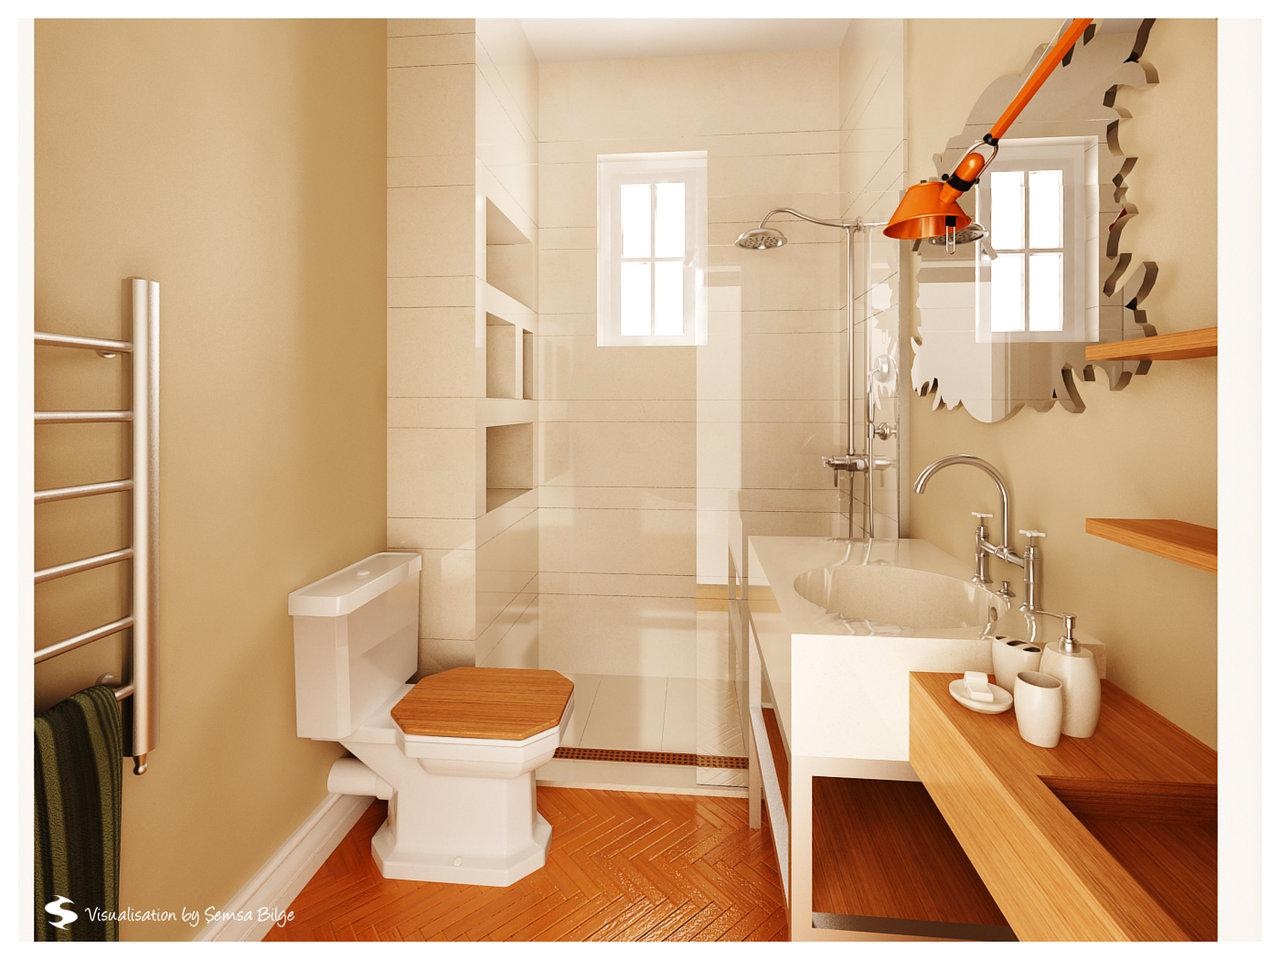 luxurious-small-wooden-bathroom1